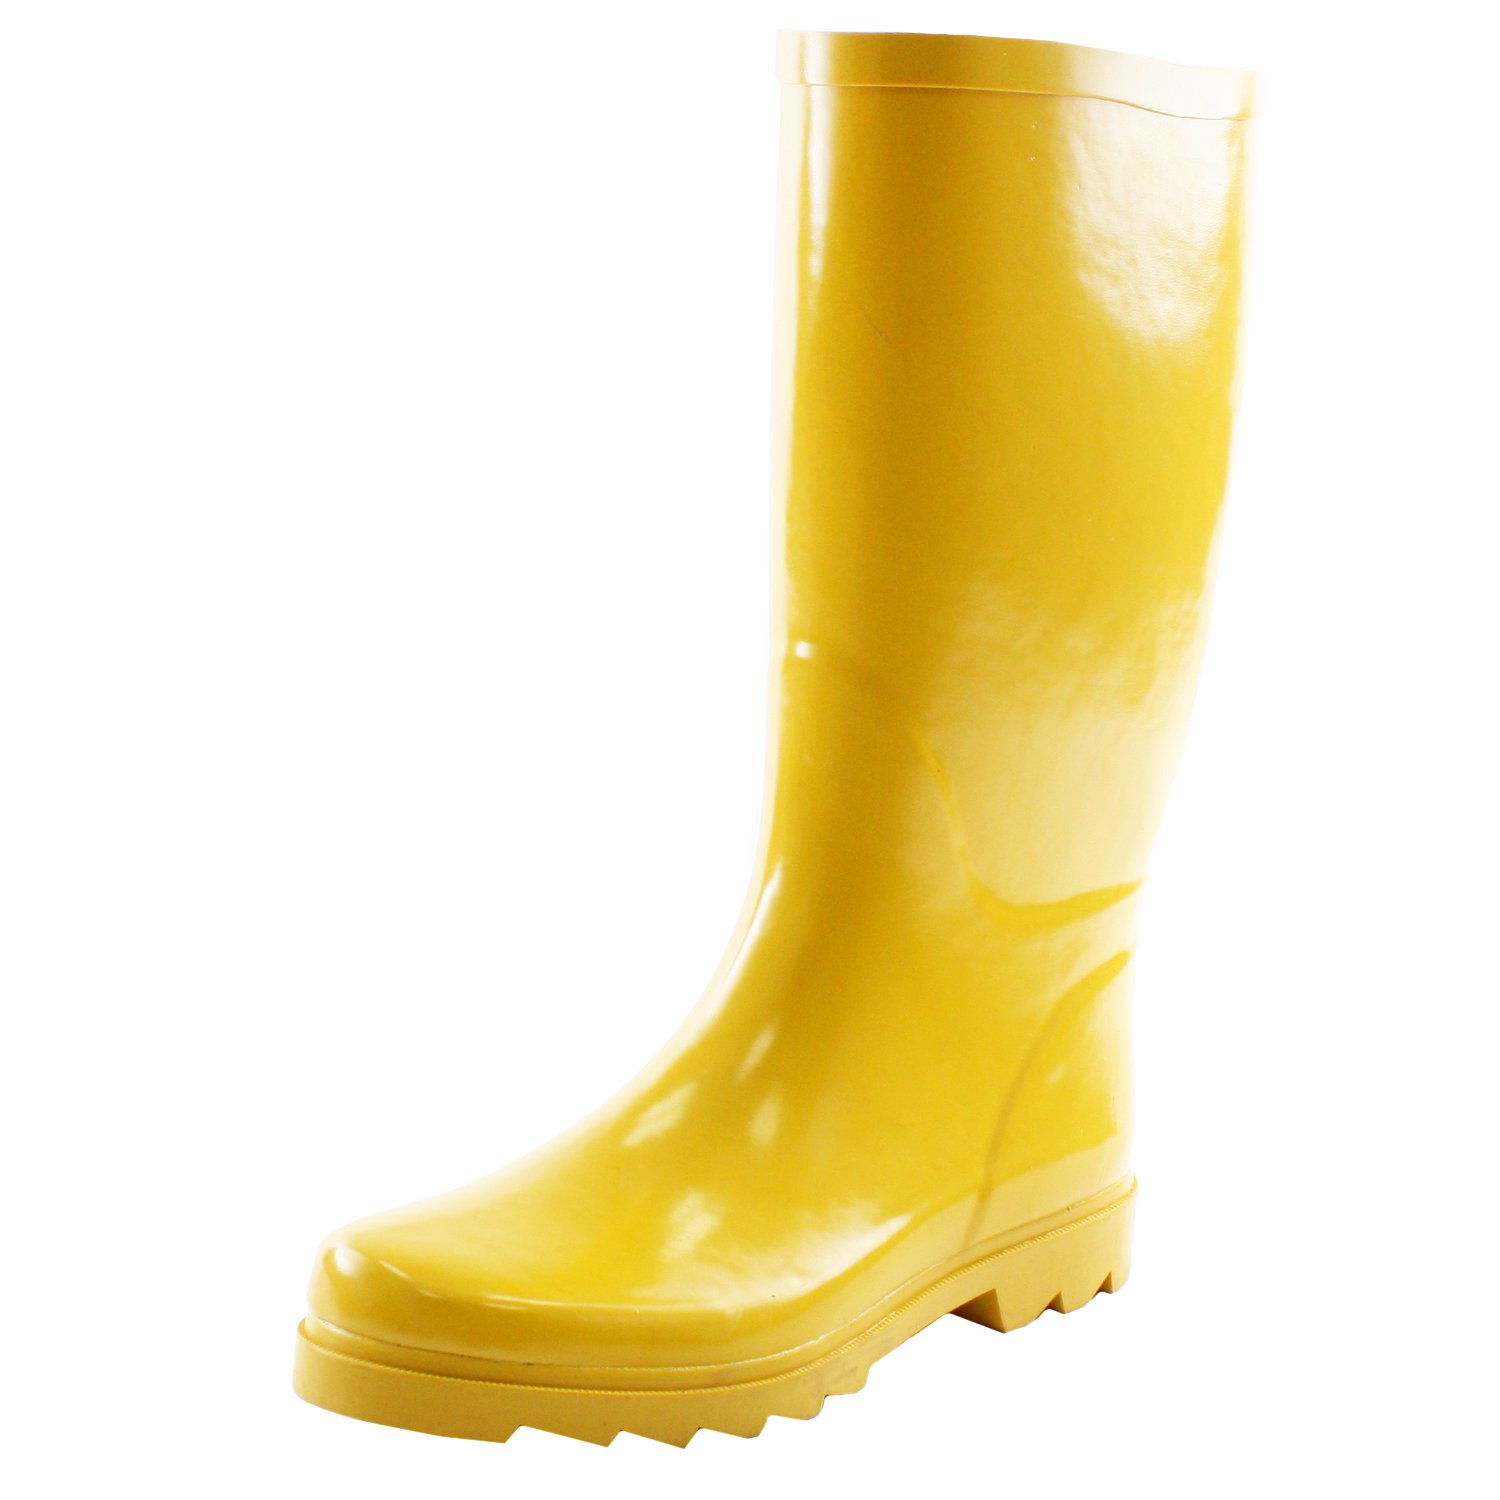 West Blvd Women's Mid Calf Waterproof Rainboots туфли nine west nwomaja 2015 1590